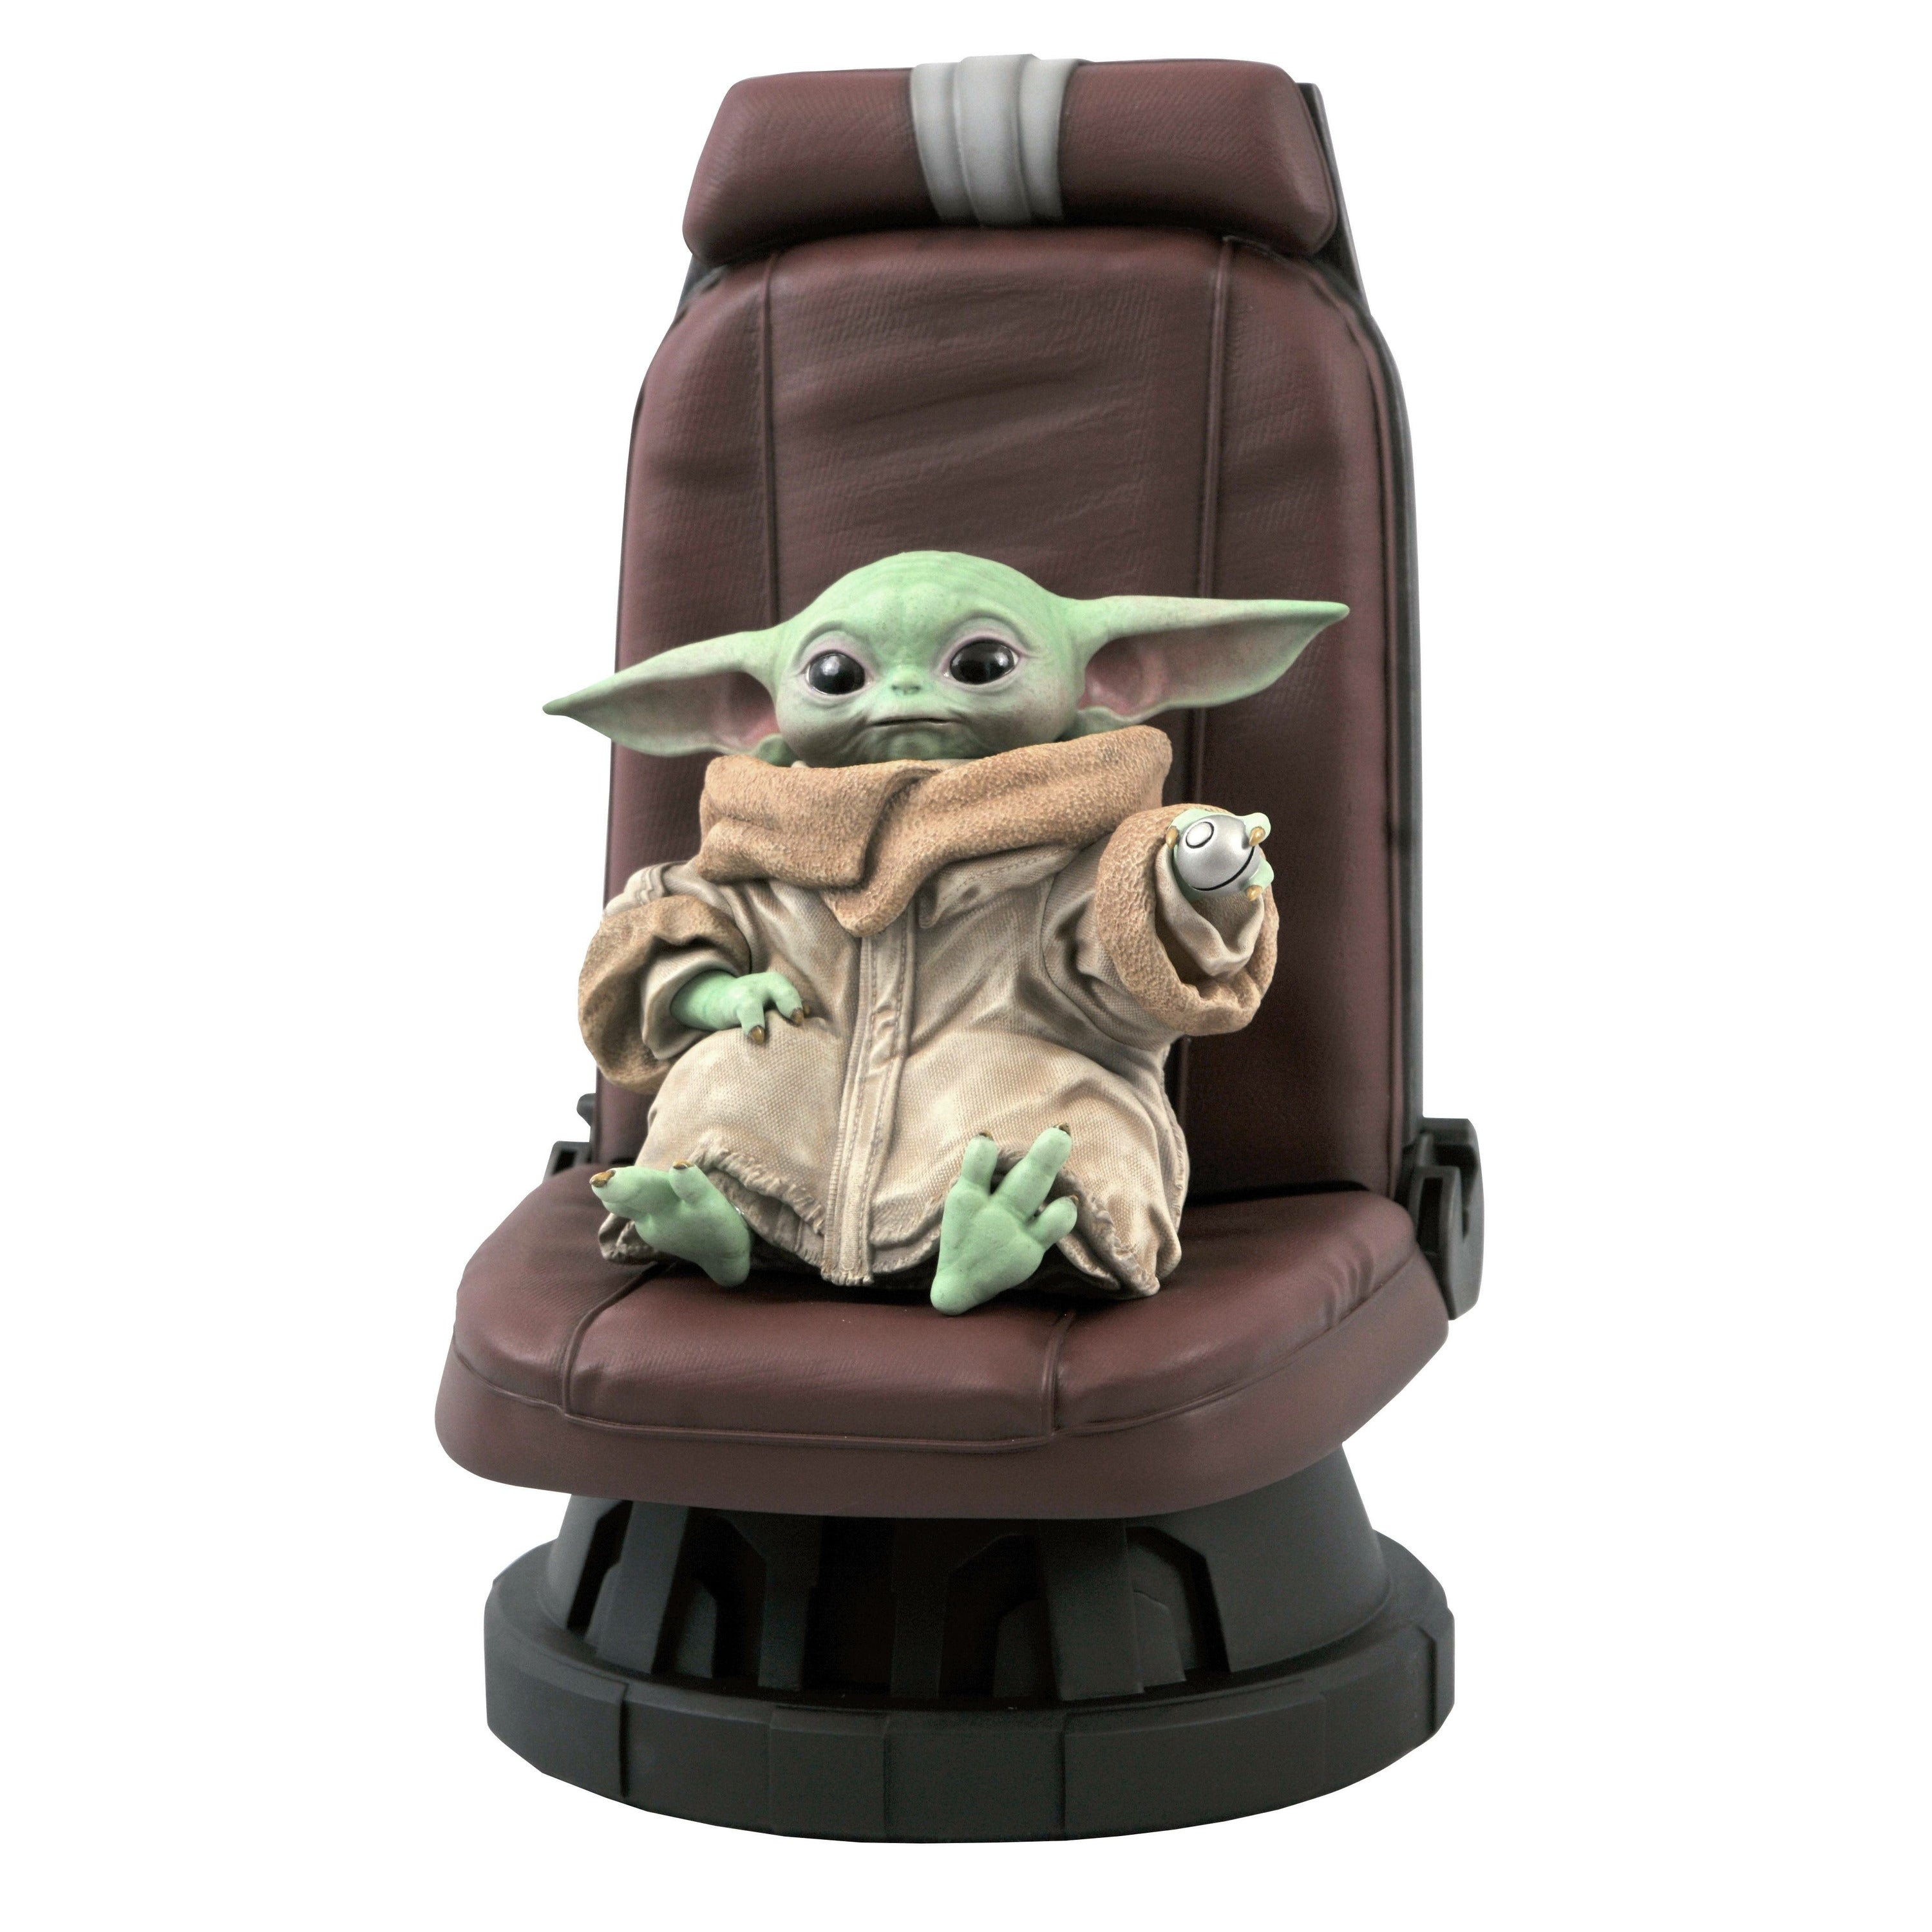 Star Wars The Mandalorian Child In Chair 1/2 Scale Statue